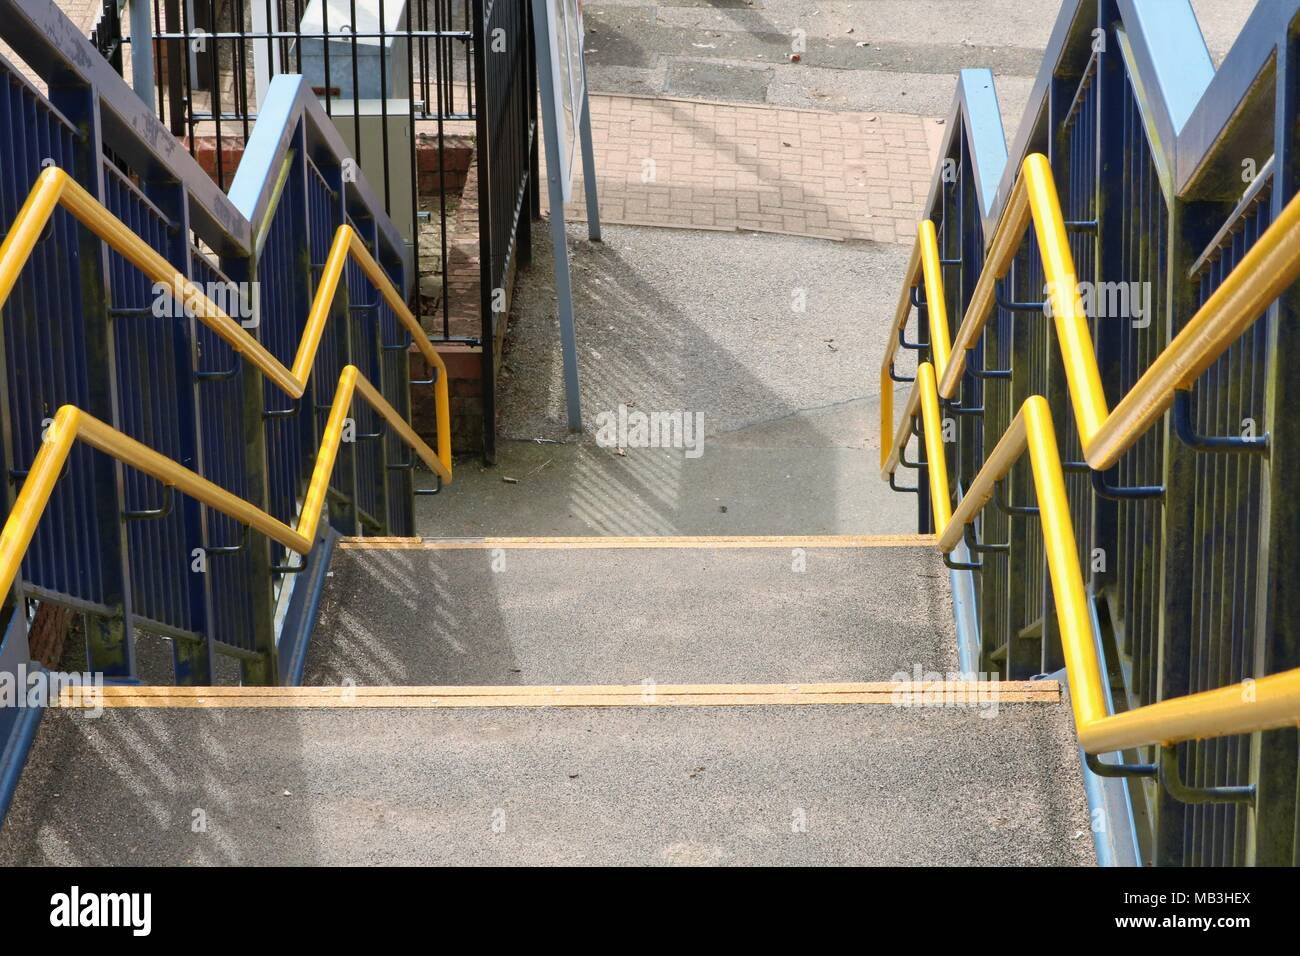 View looking down concrete steps with yellow handrails - Stock Image